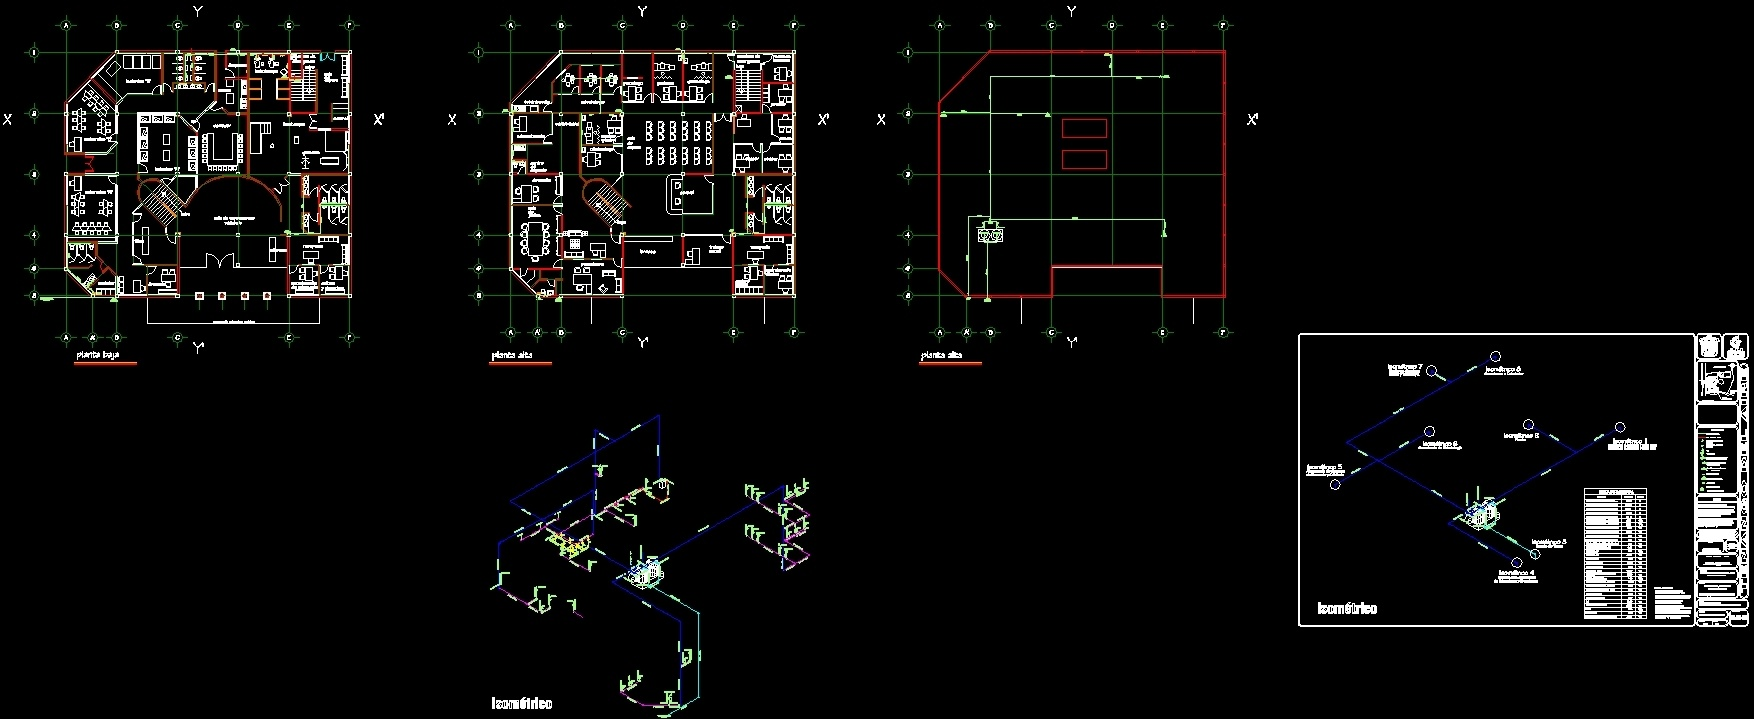 Plumbing Project Dwg Full Project For Autocad Designs Cad # Muebles Gimnasio Dwg